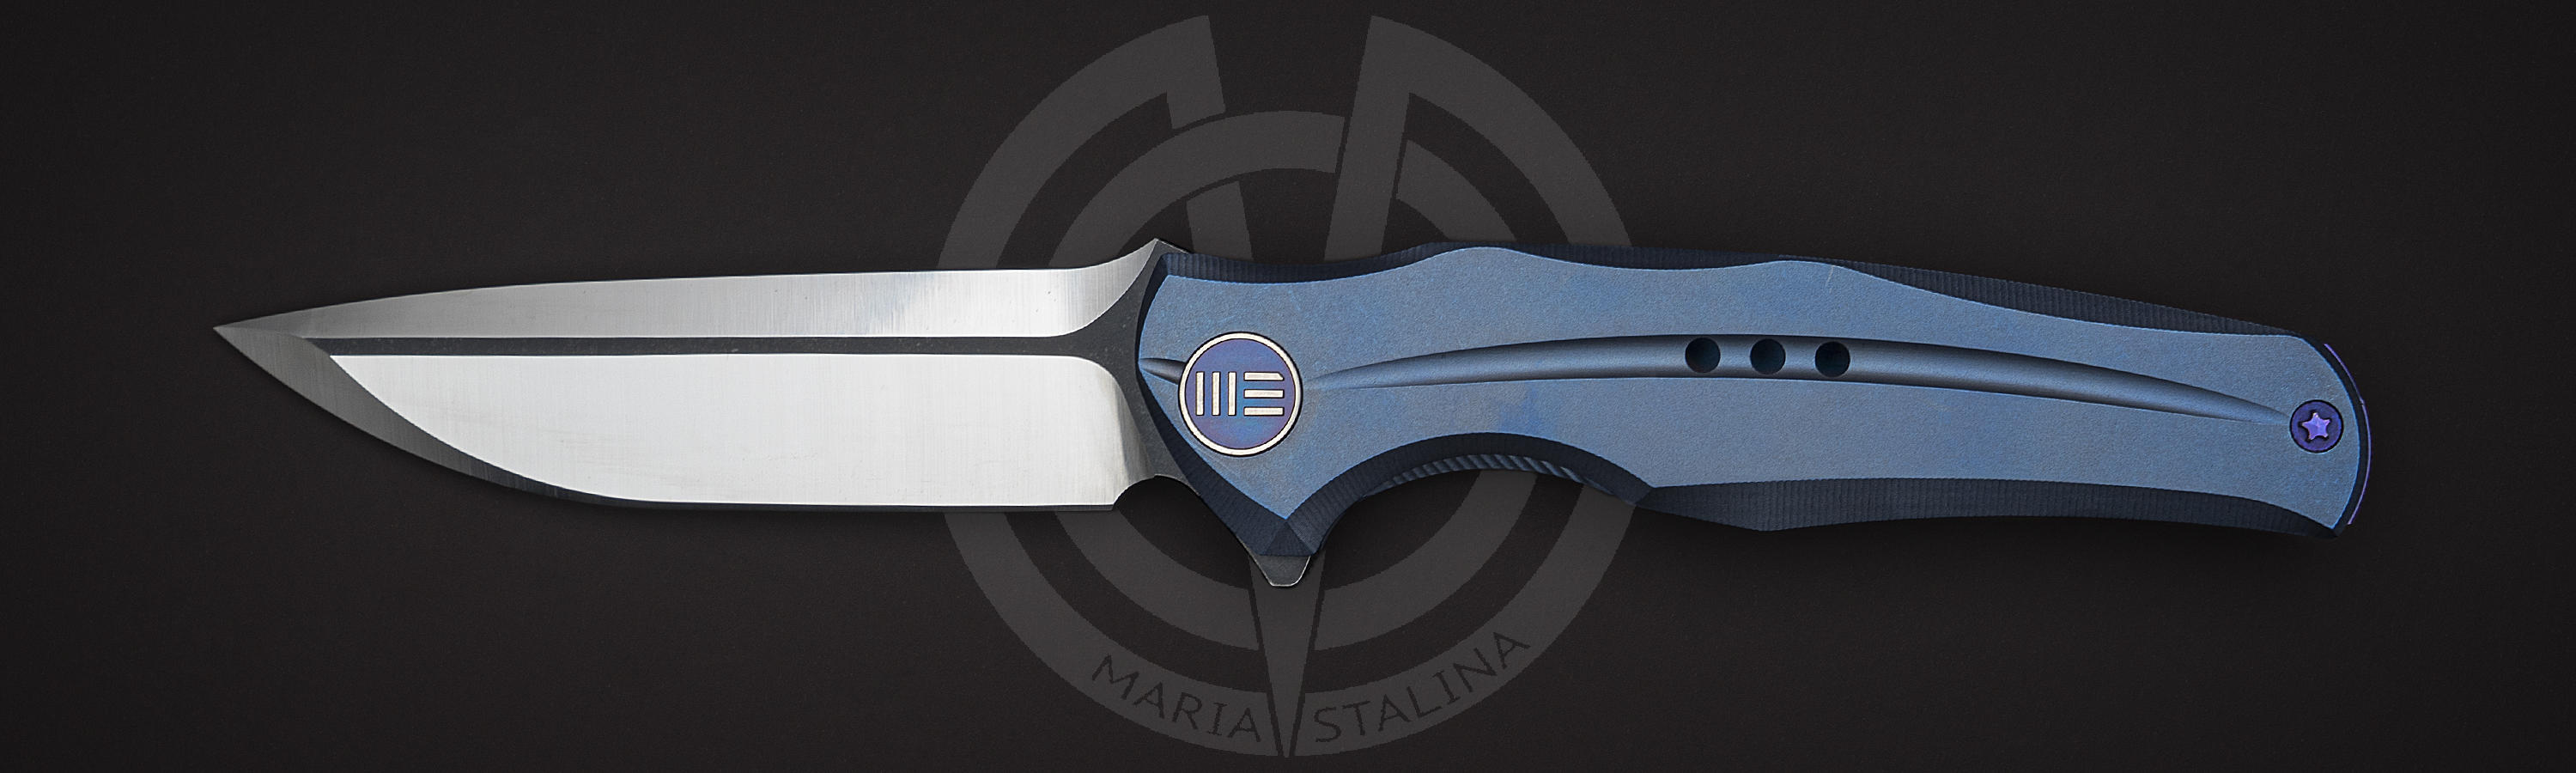 we-knife-model-601-blue-1